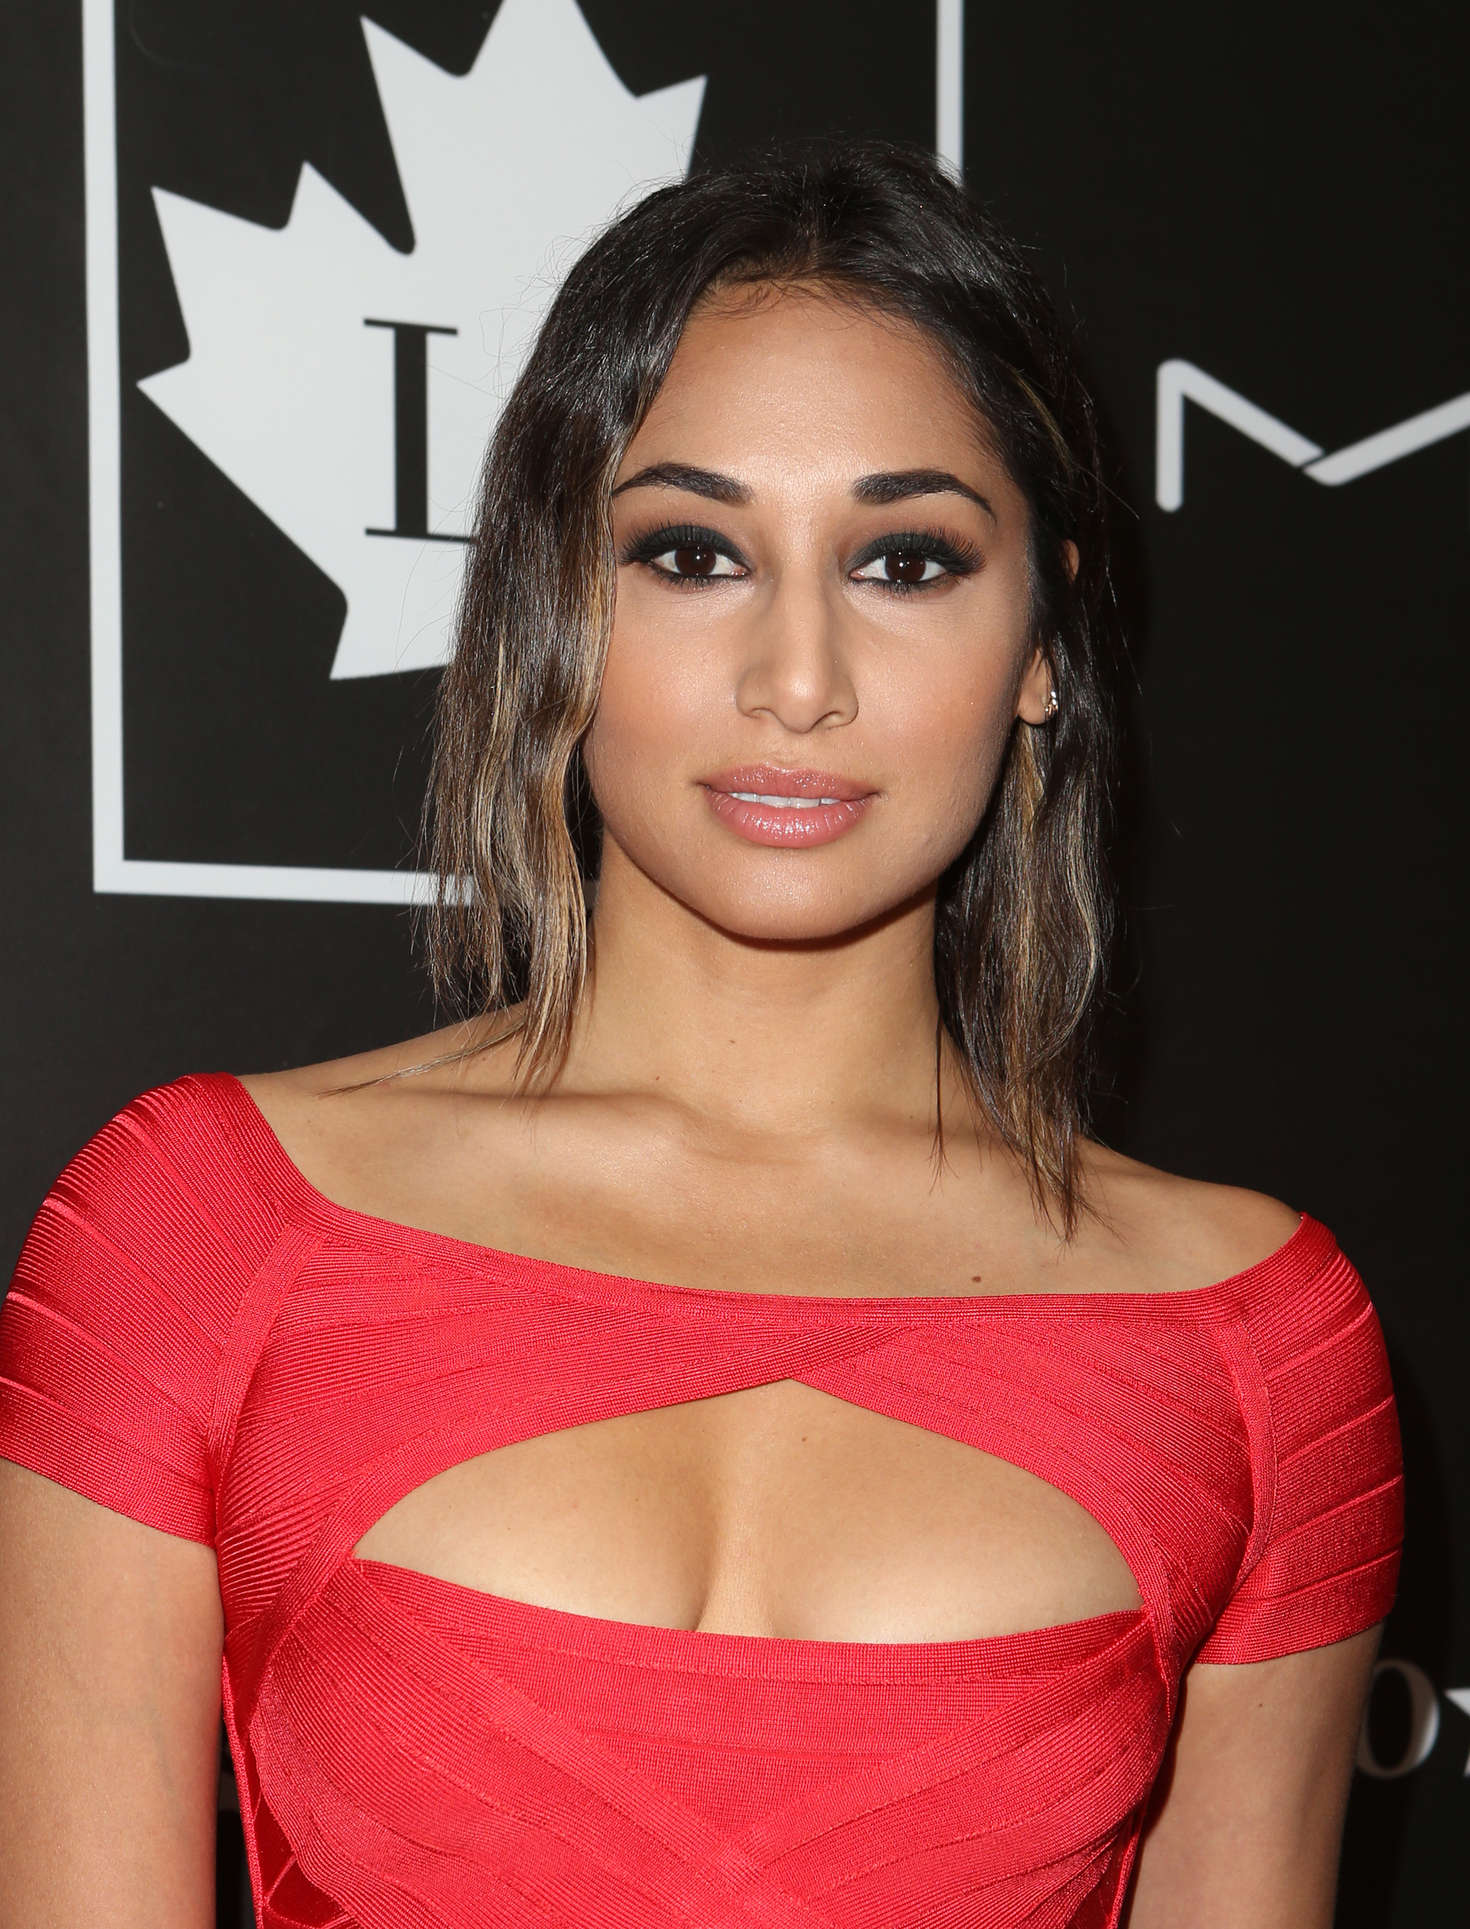 Photos Meaghan Rath naked (83 photo), Pussy, Hot, Instagram, butt 2019